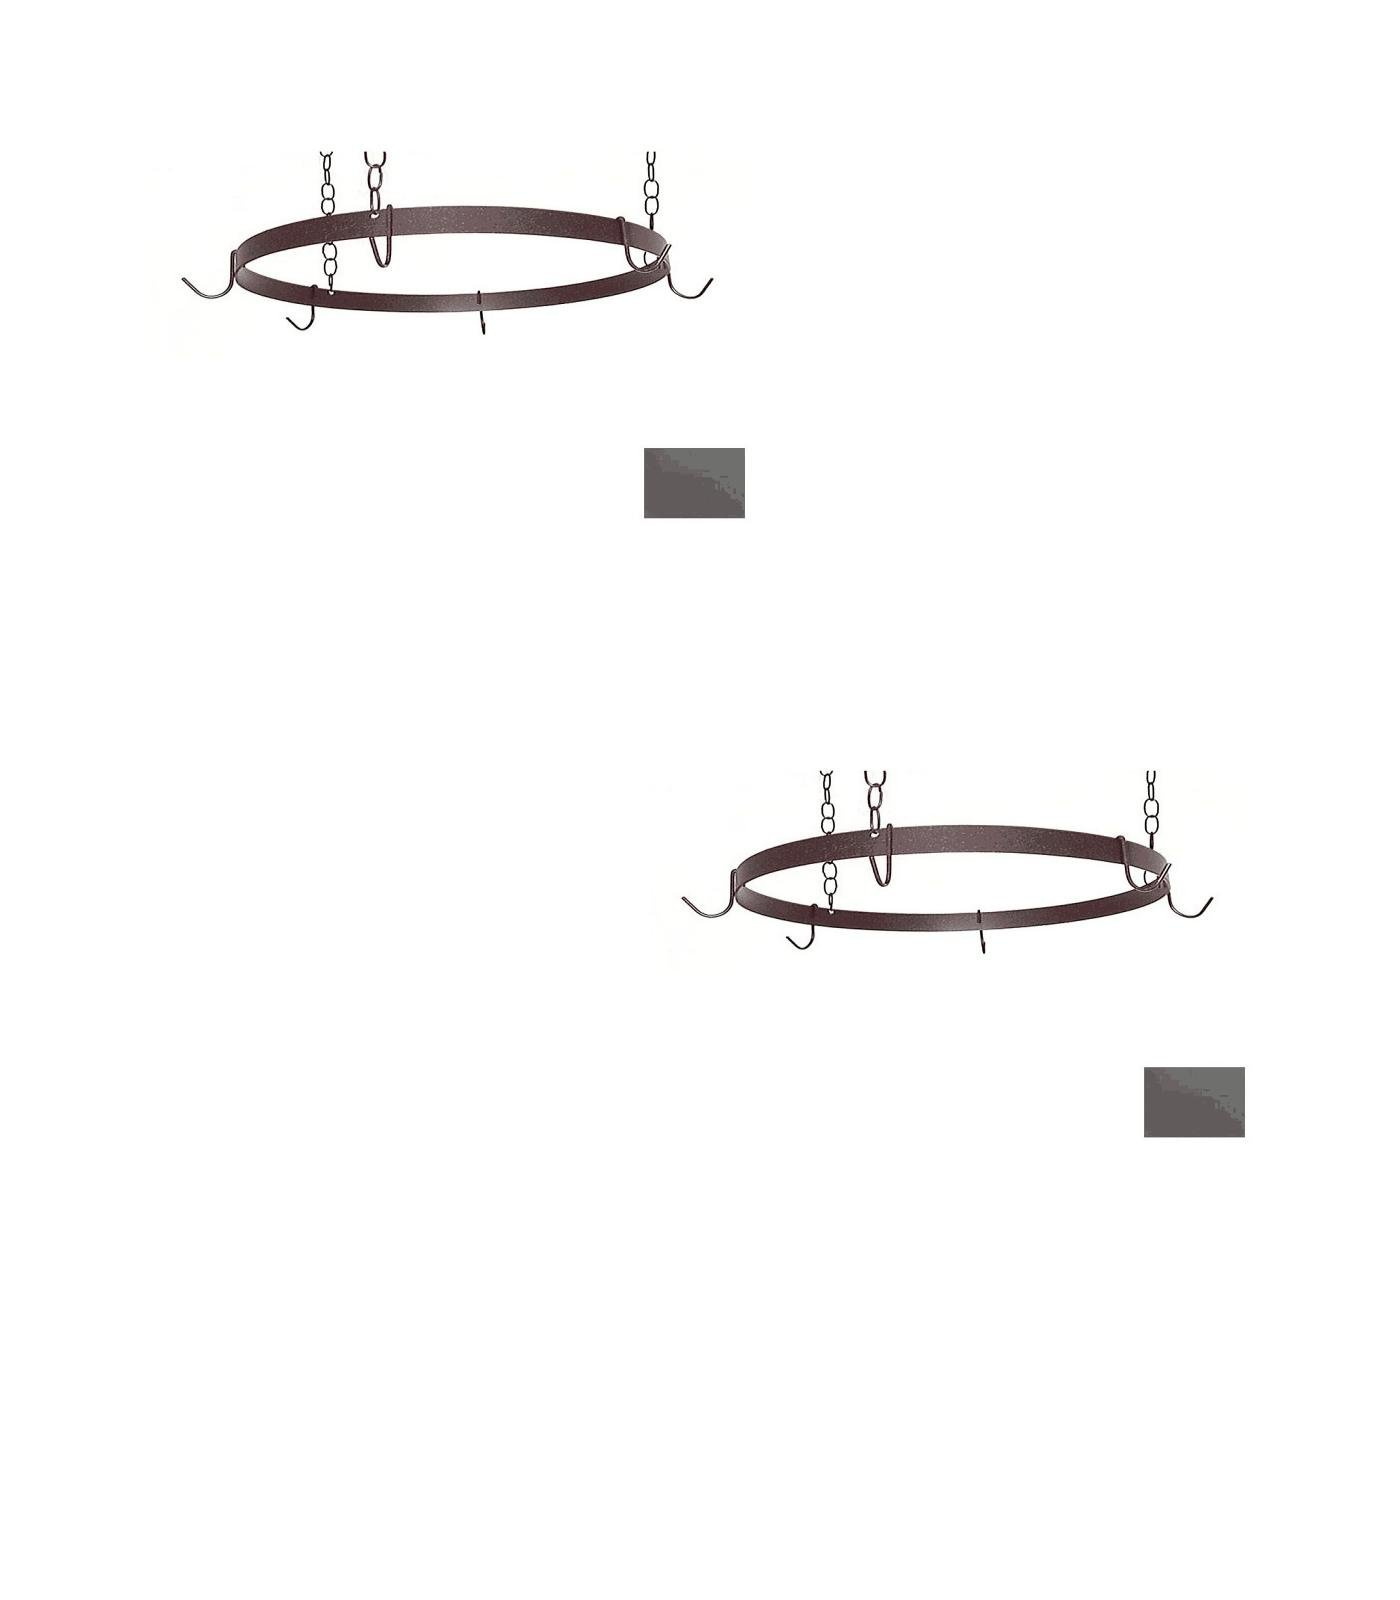 20-in x 20-in Jade Teal Round Pot Rack - Grace Collection Model - GMC-BR-20-JT - Set of 2 Gift Bundle